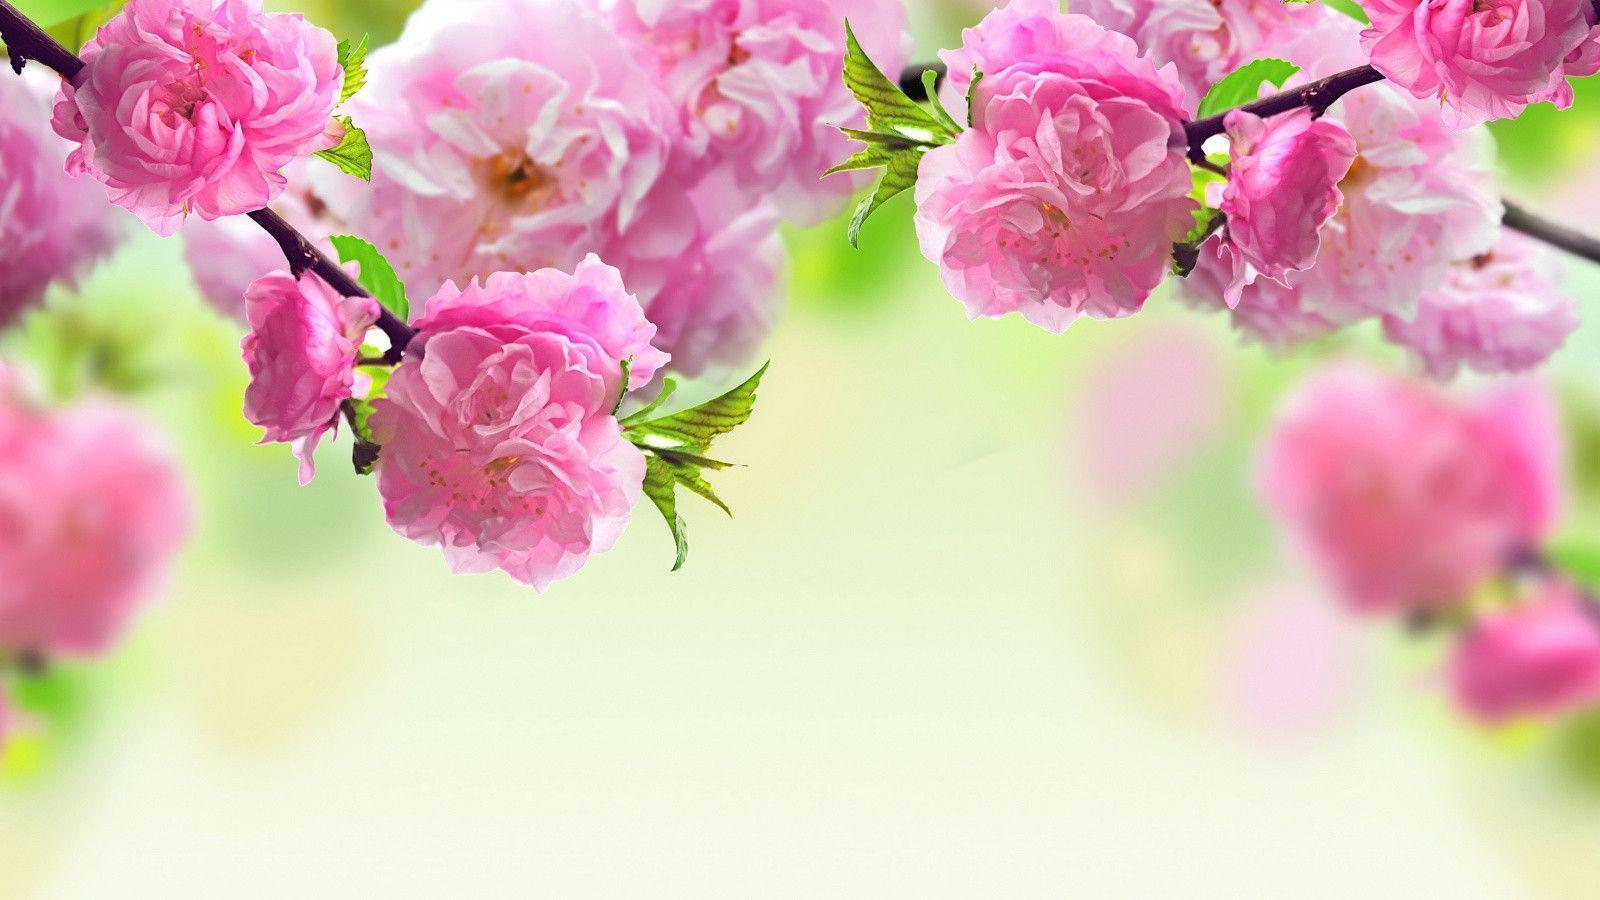 Hd Flowers Computer Wallpapers Wallpaper Cave